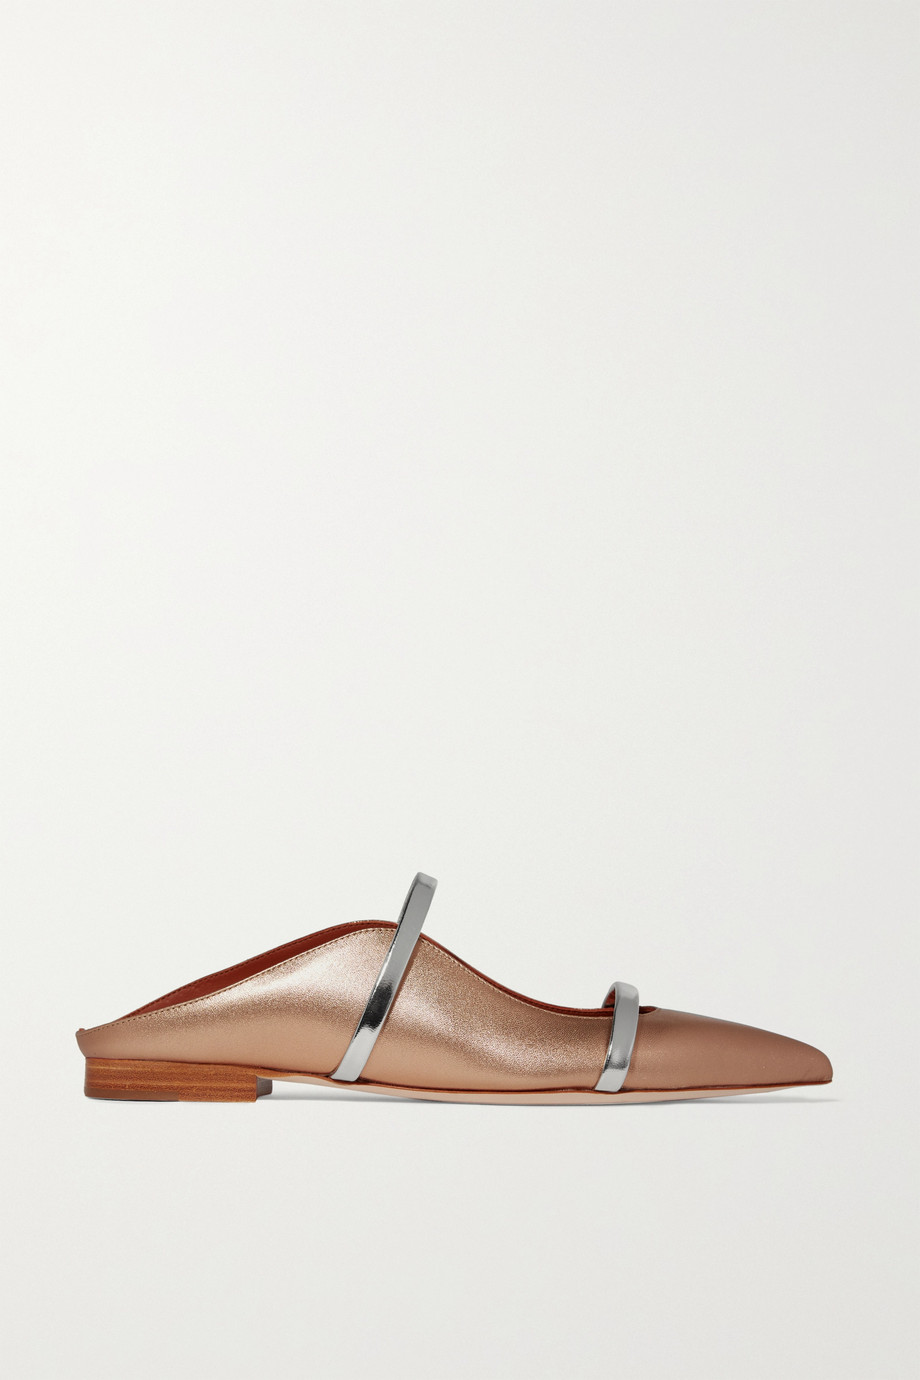 Malone Souliers Maureen metallic leather point-toe flats